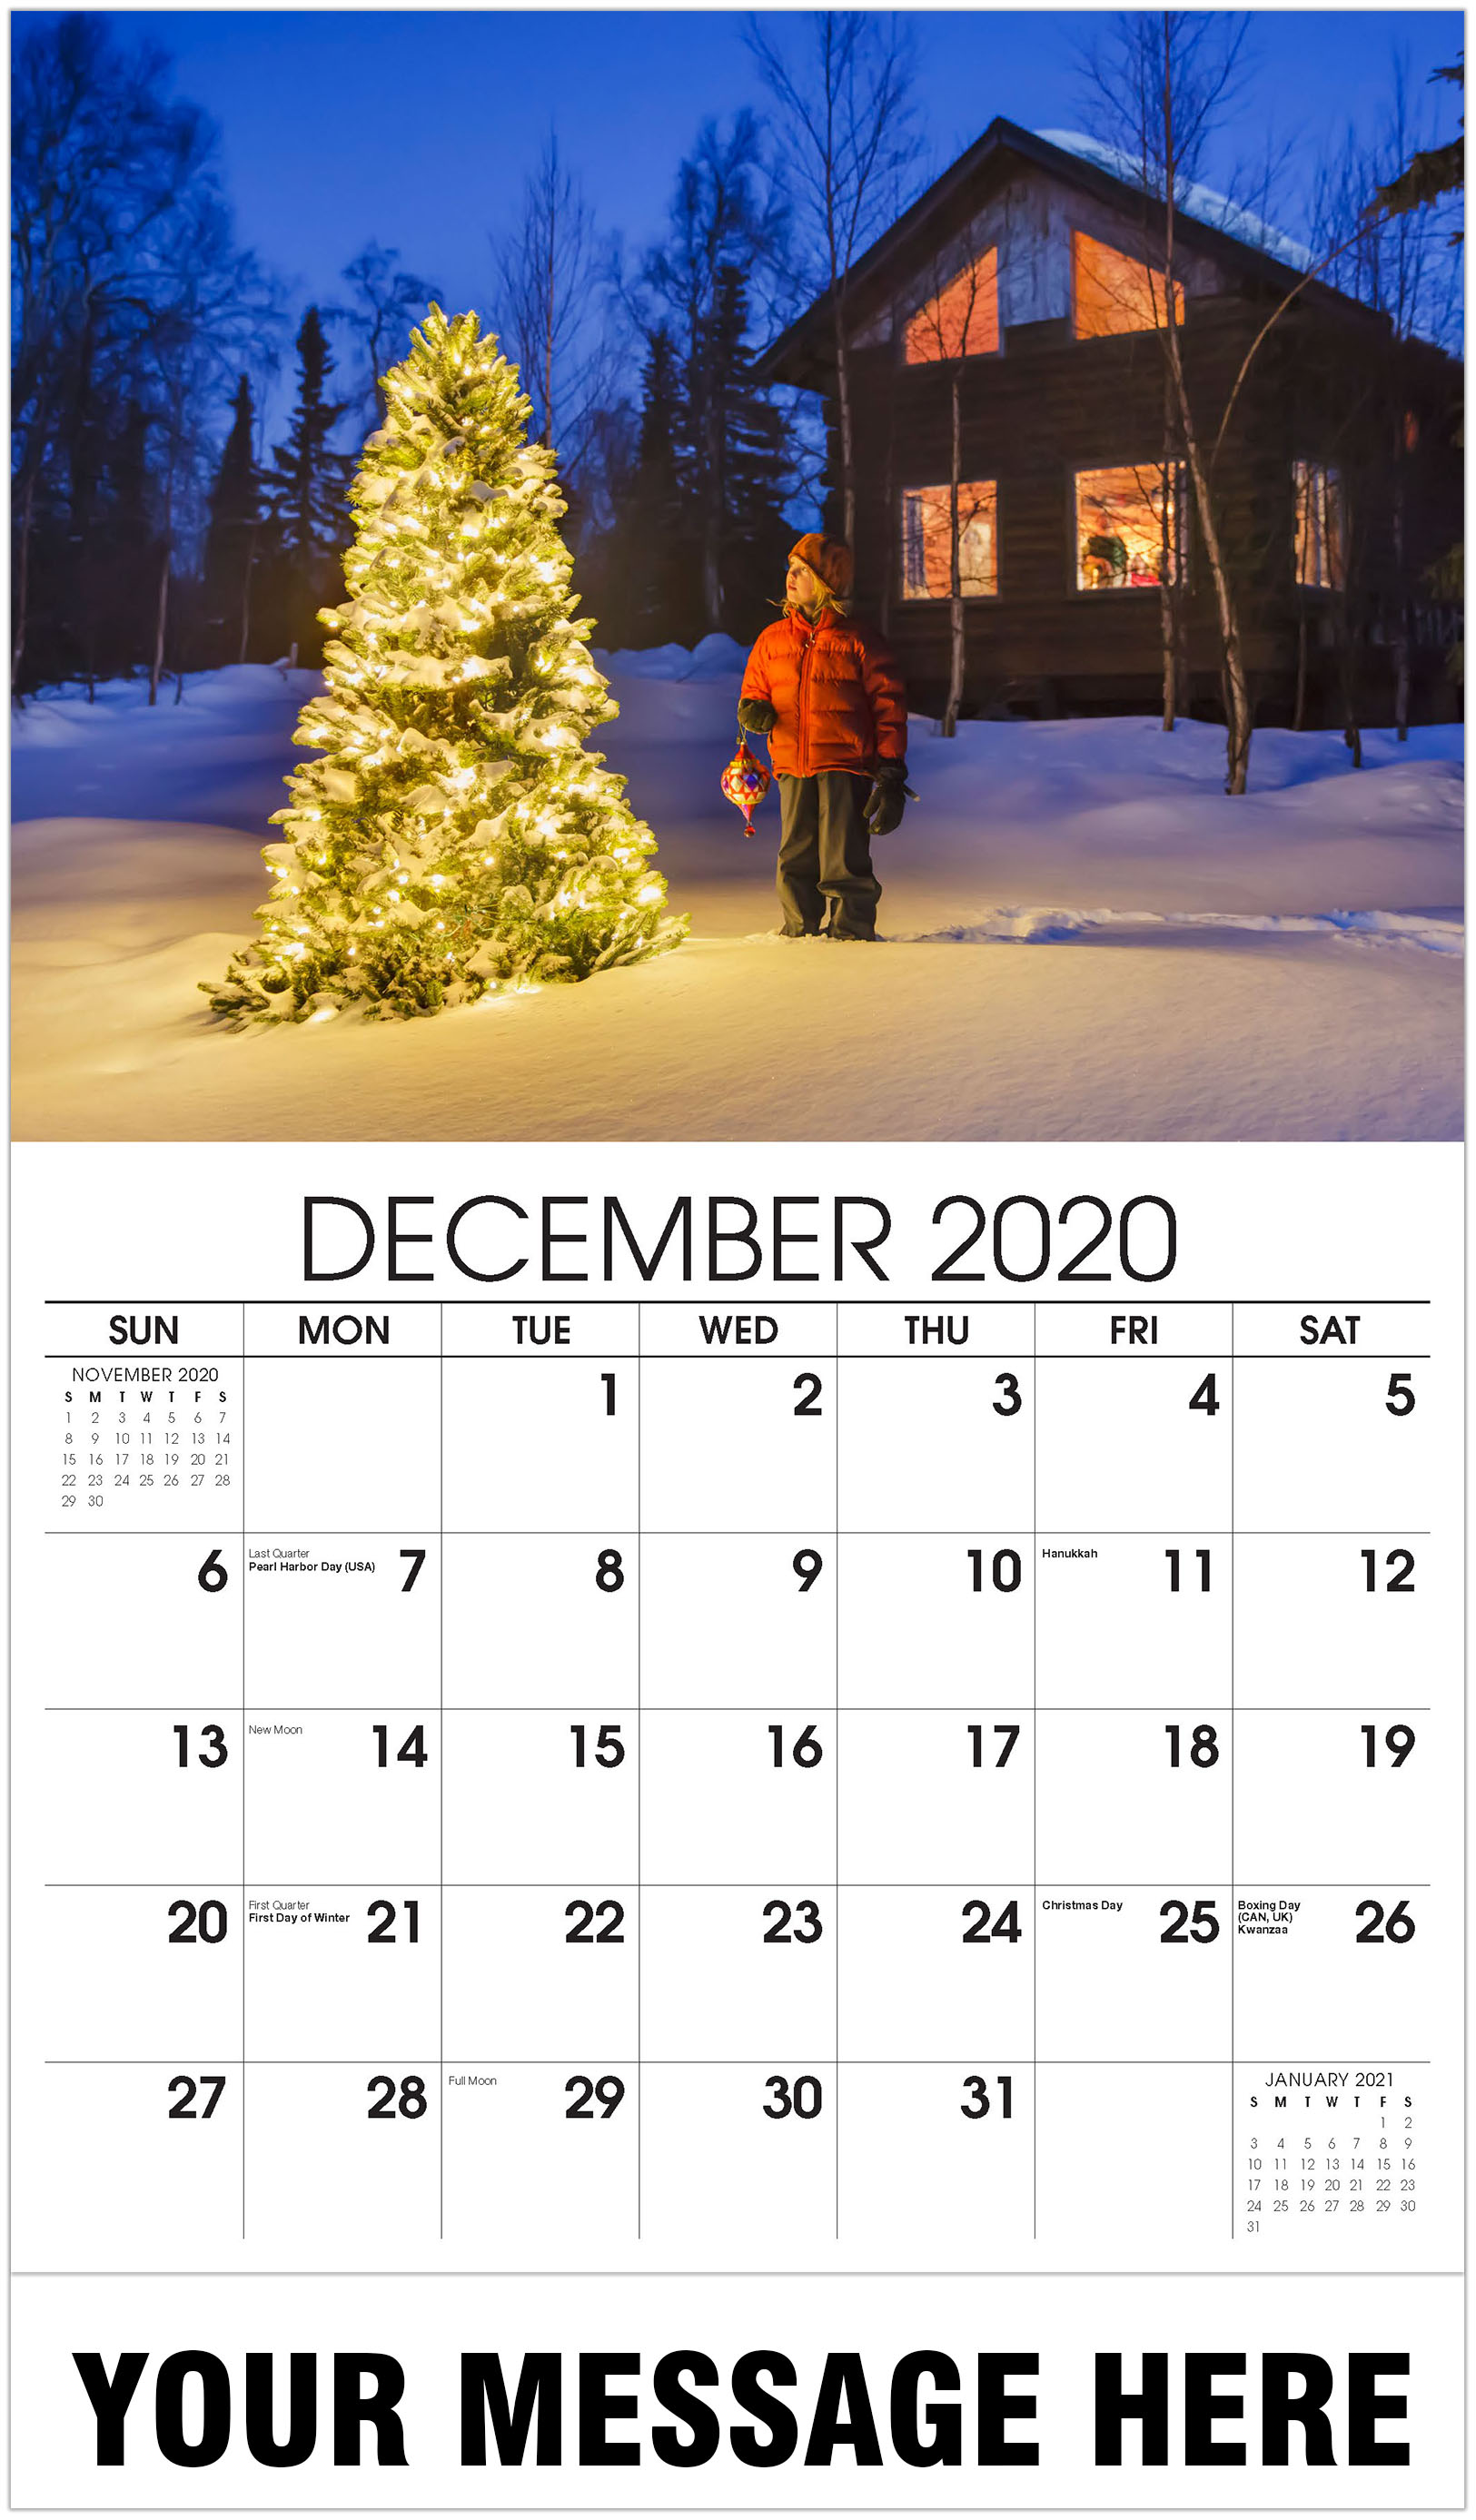 Country christmas tree - December 2020 - Country Spirit 2021 Promotional Calendar